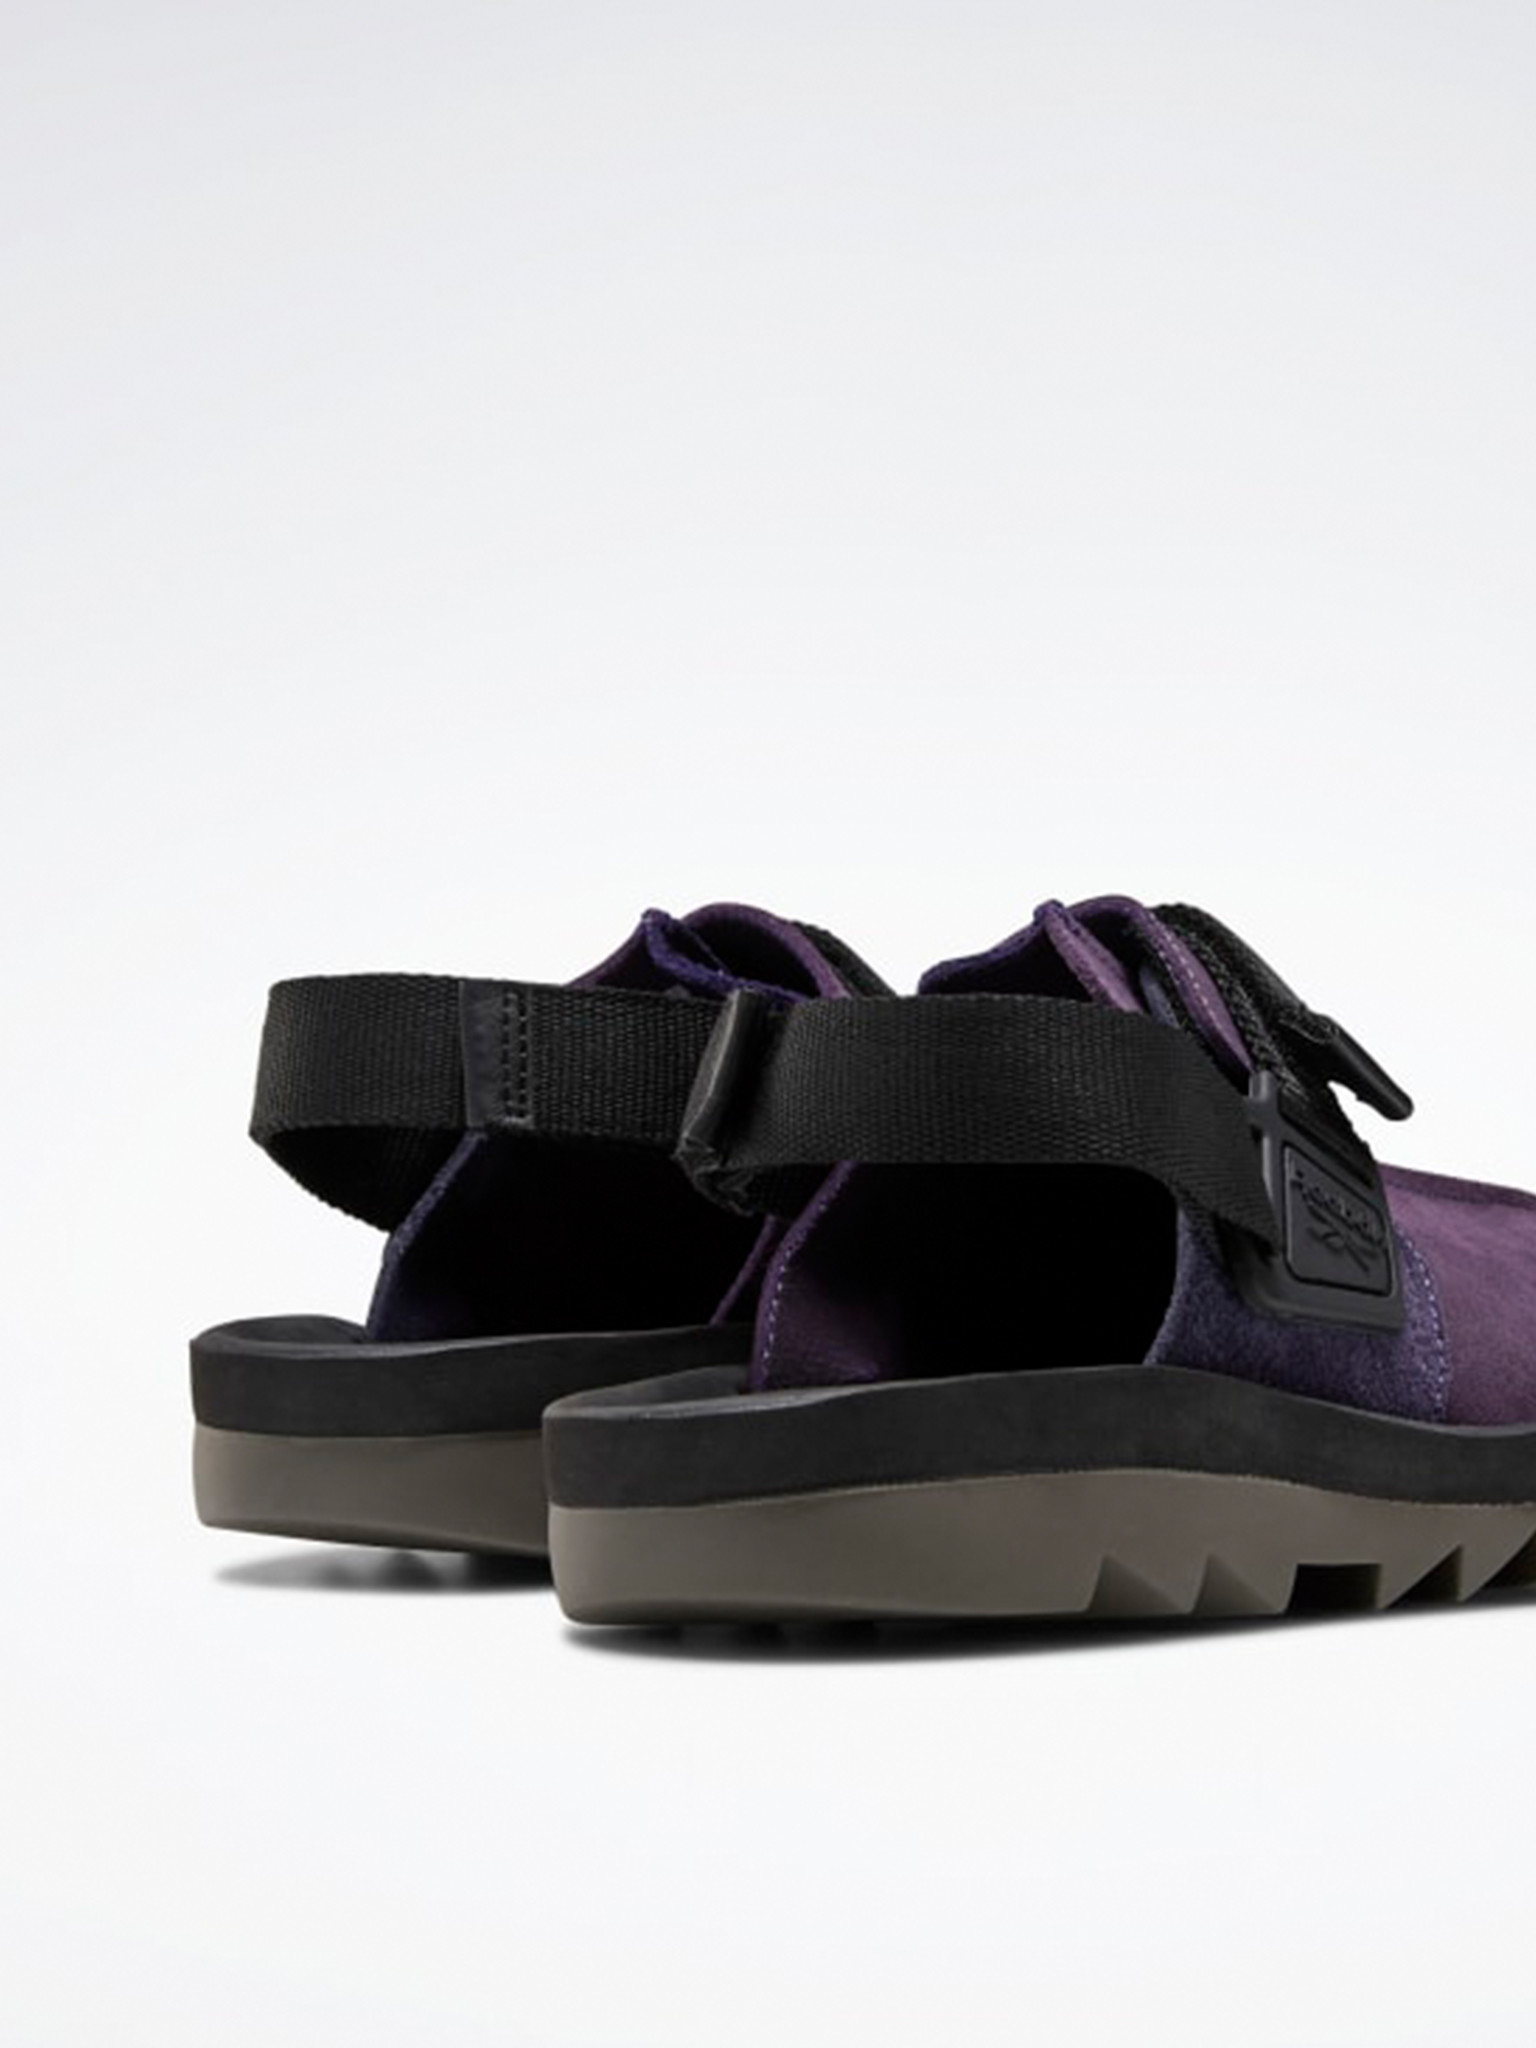 Beatnik Shoes - Suede Sandals